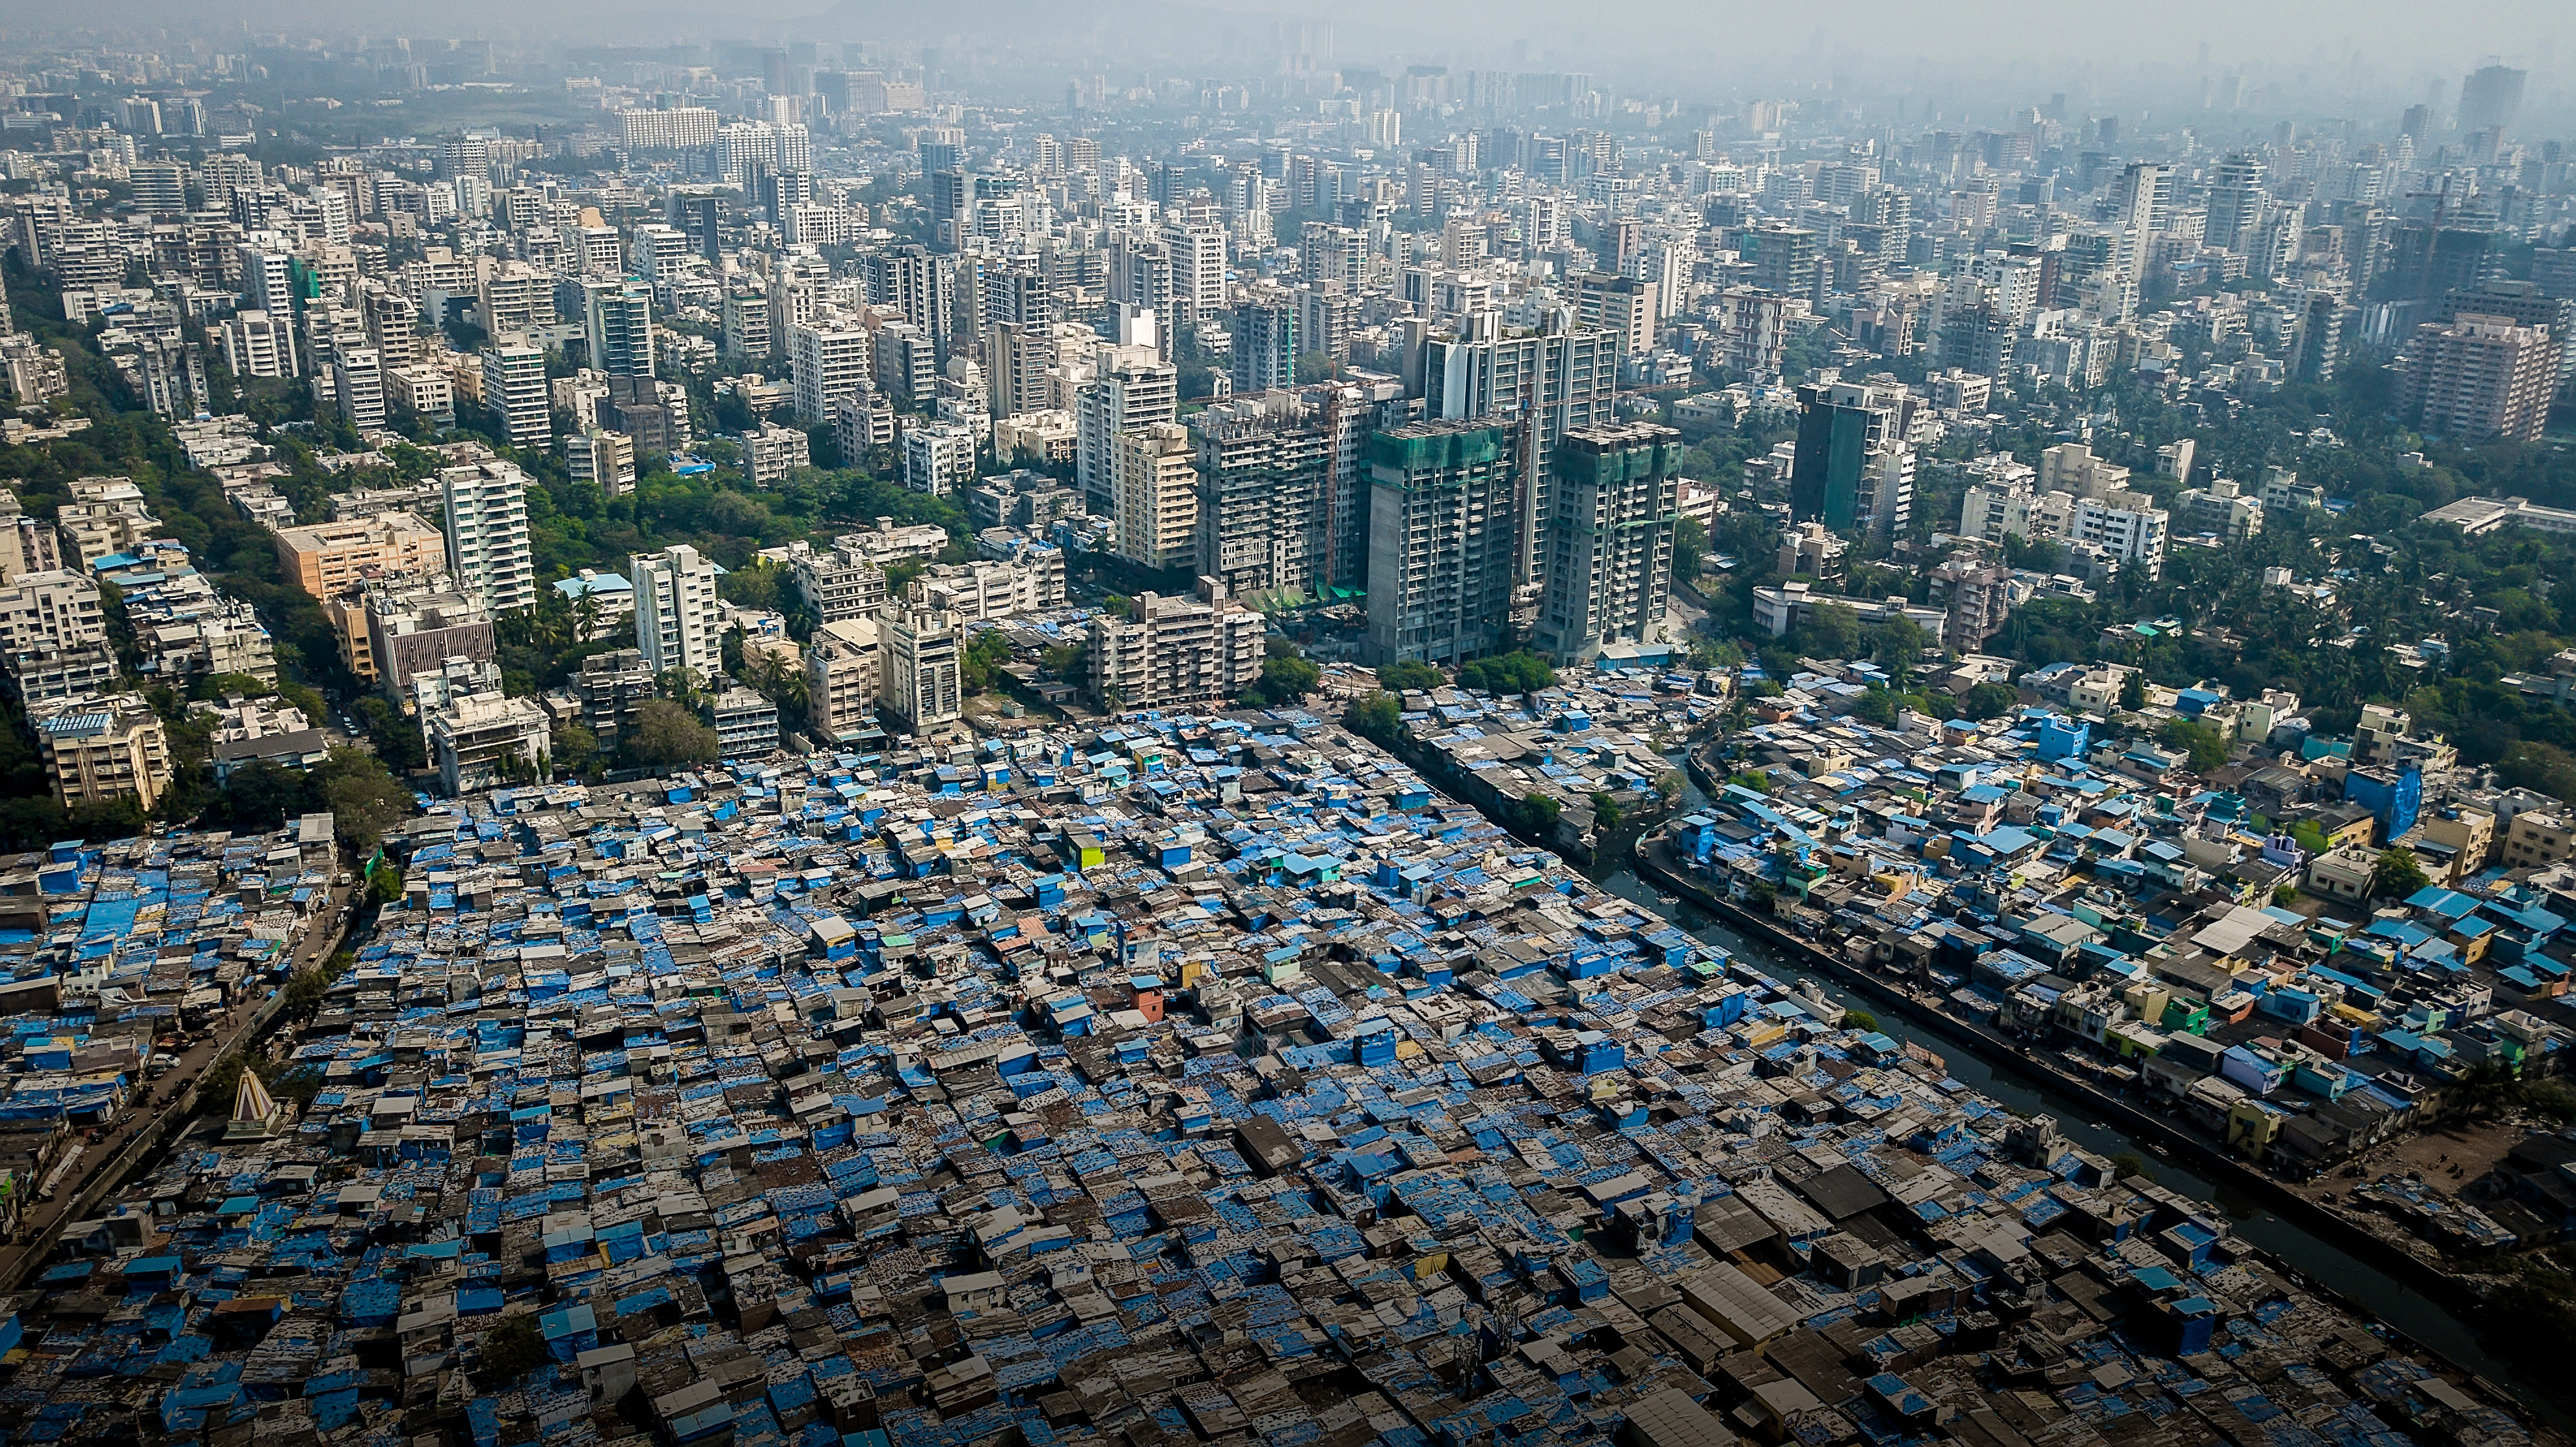 Parts of Mumbai are among the mostly densely populated areas on the planet. In some places, more than a million people live in less than one square mile. Tightly packed buildings, largely made of gray concrete covered with blue tarps, protect against the monsoon rains.